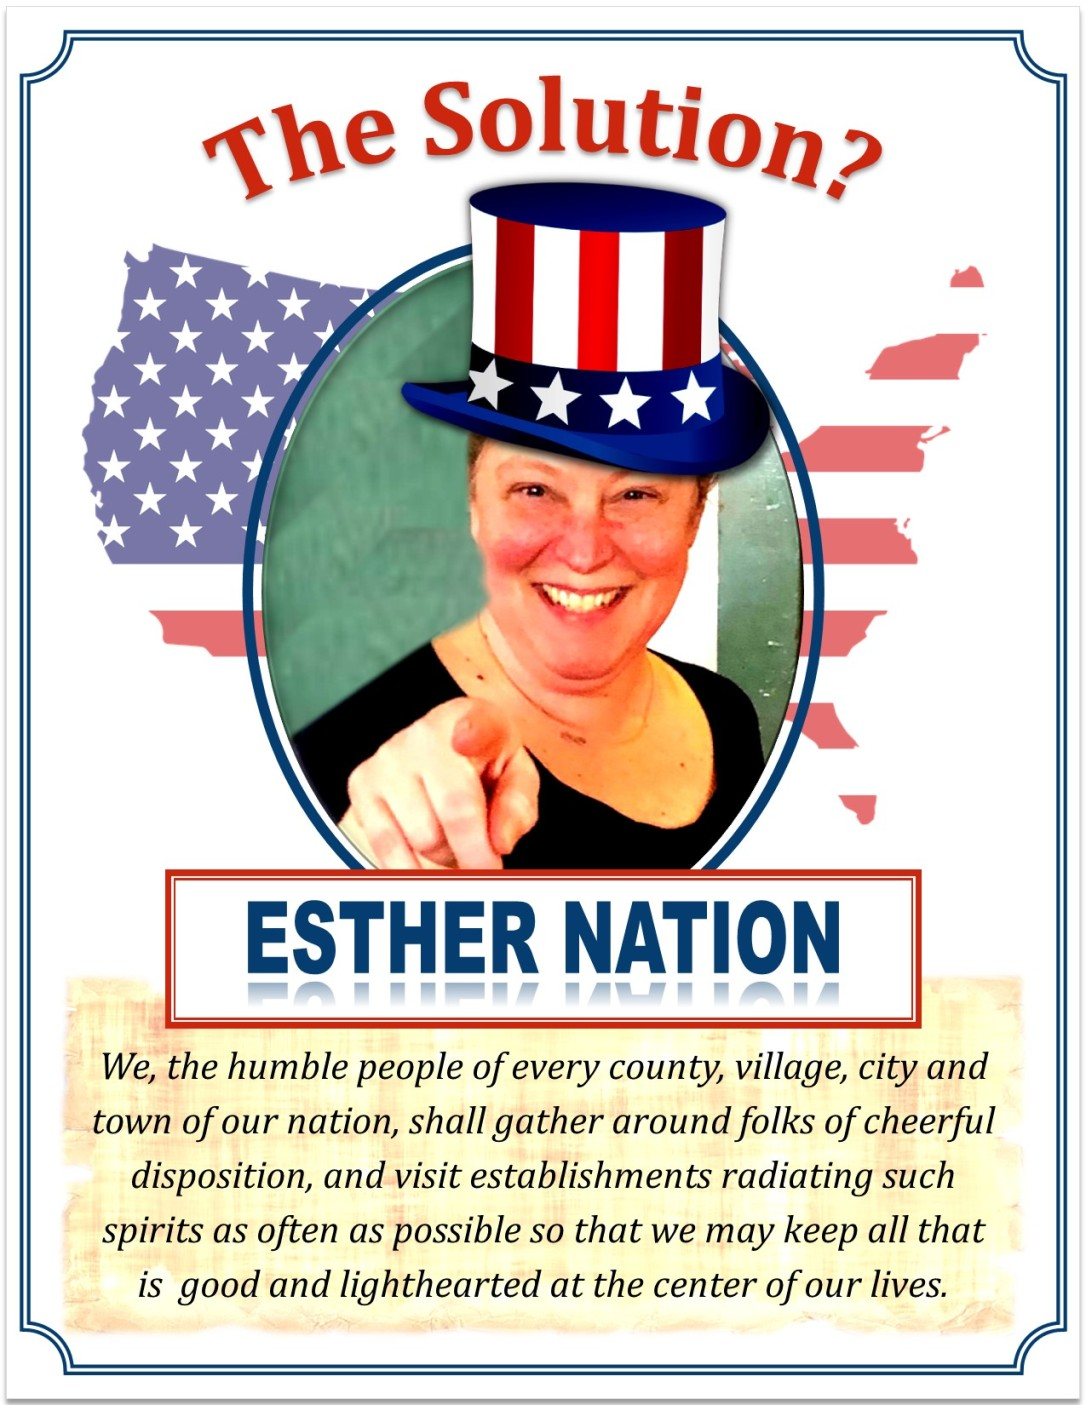 esther nation for peace